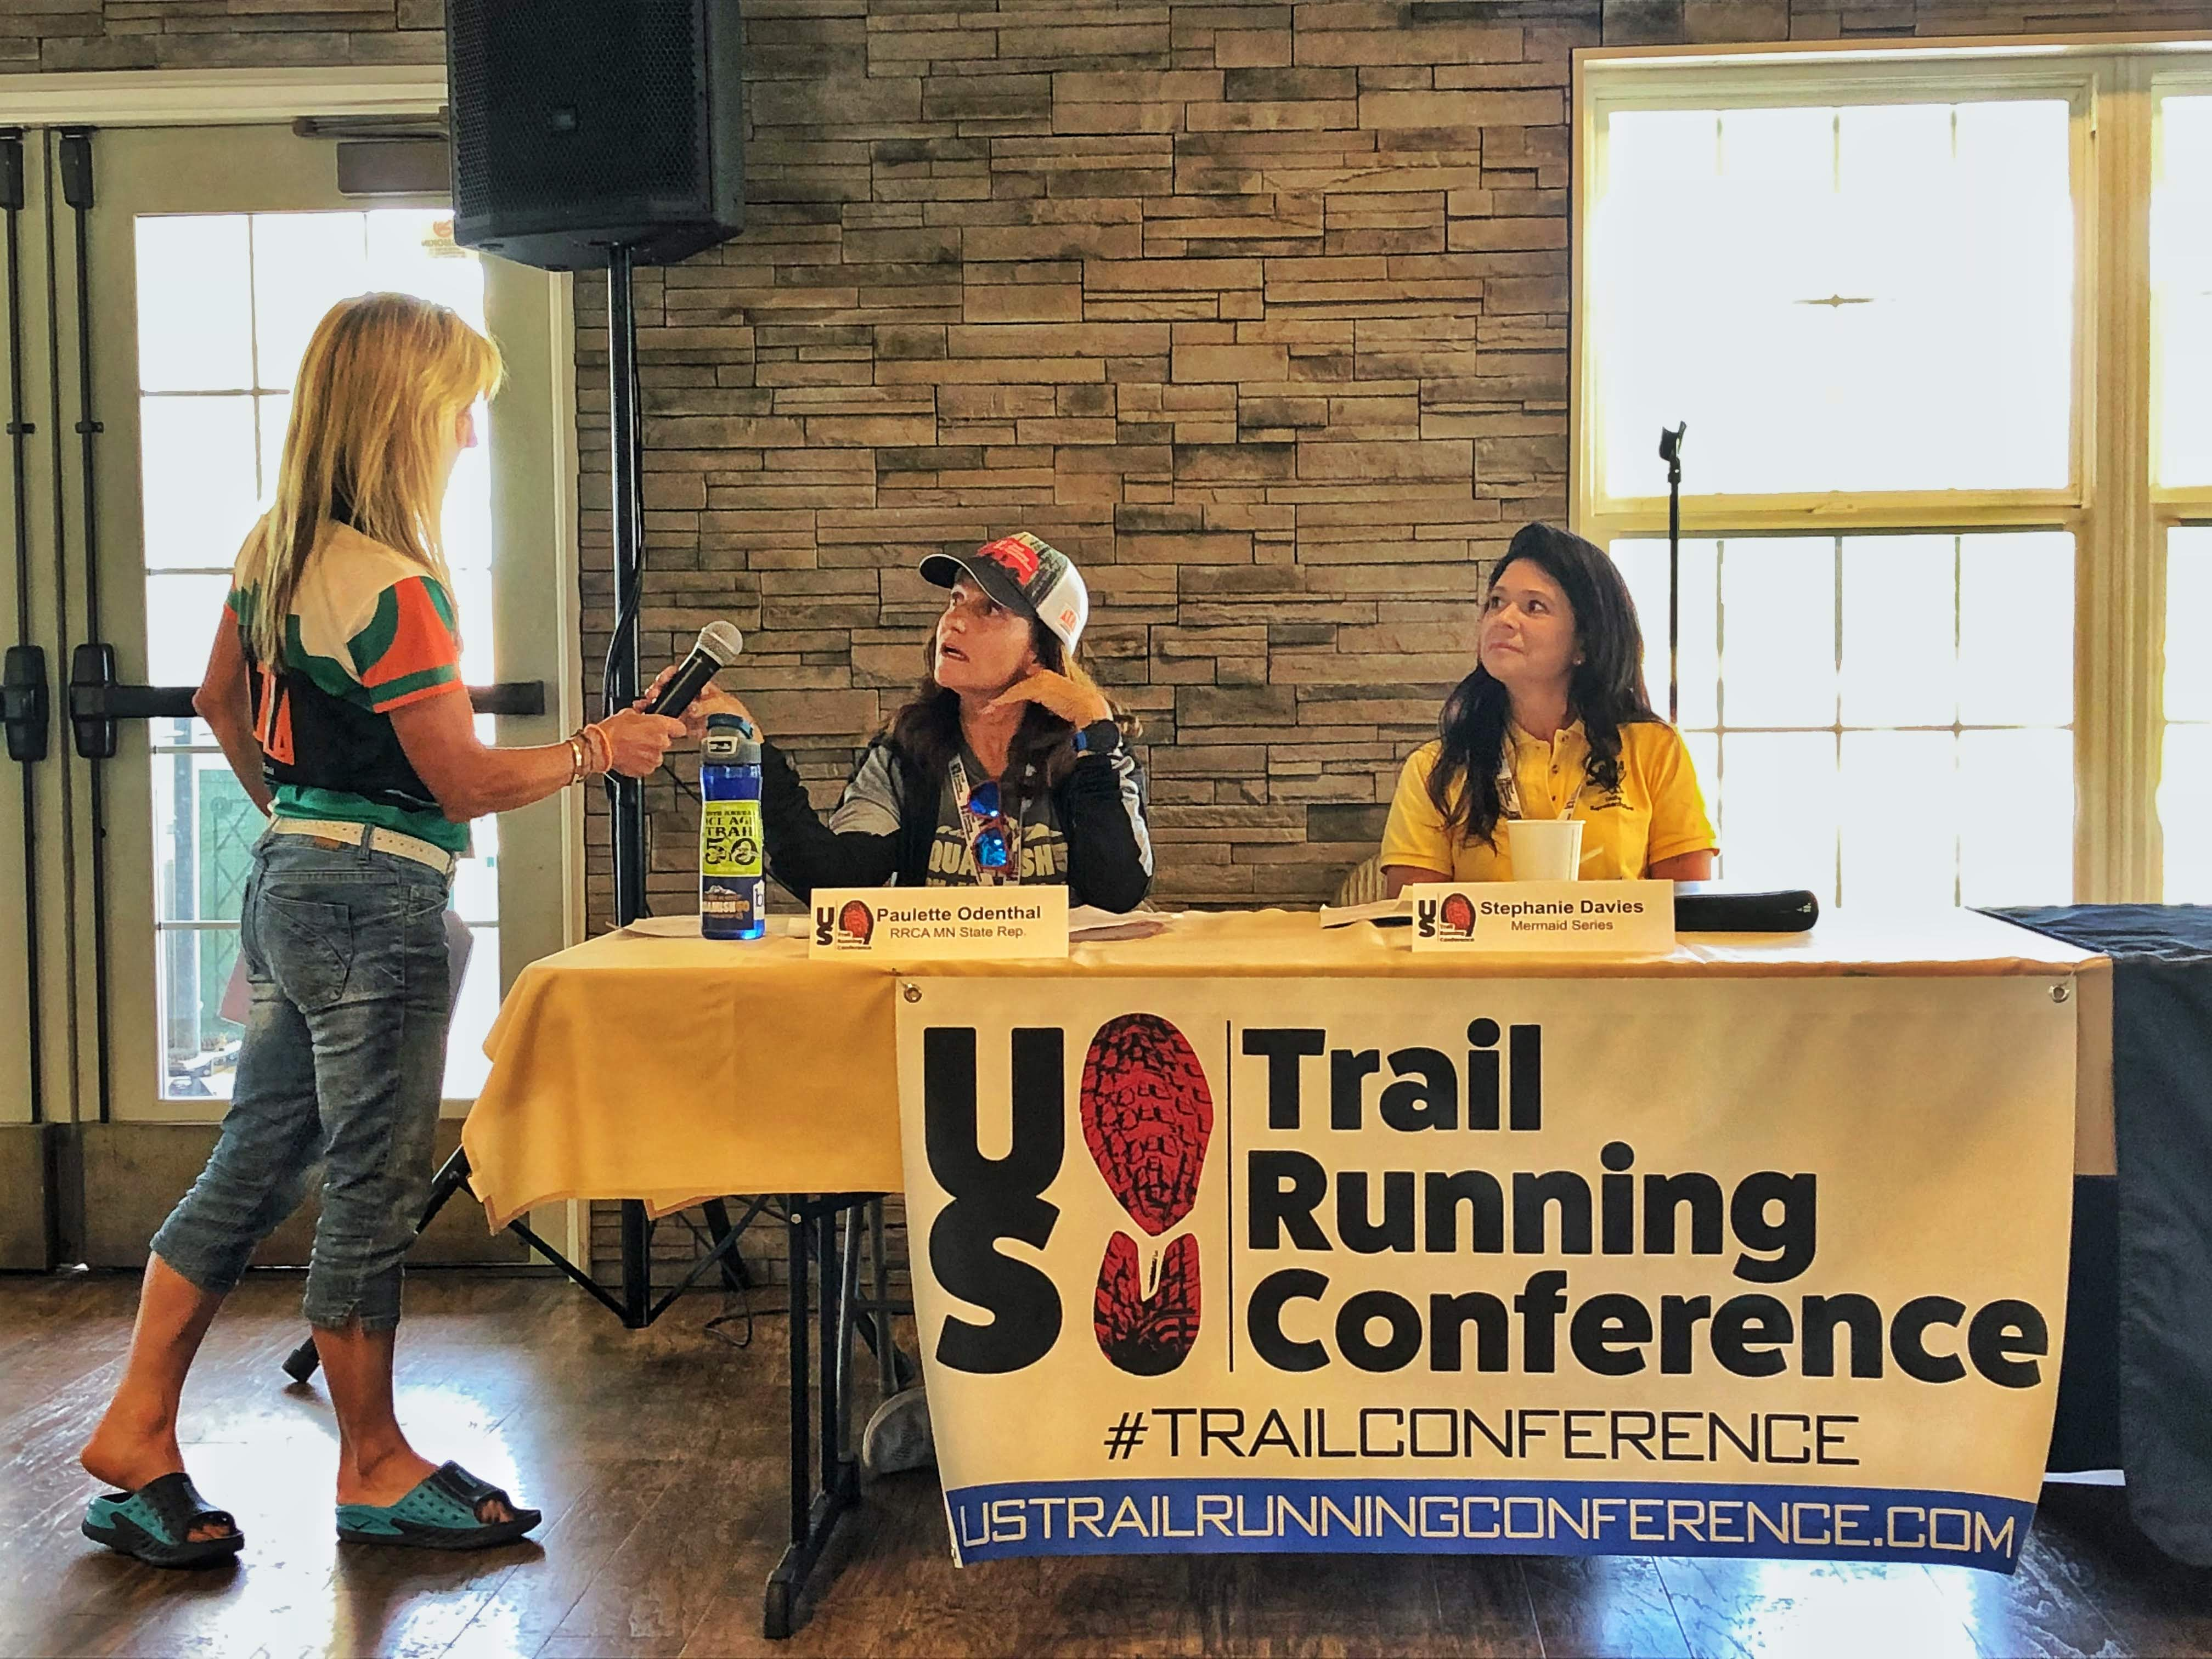 US Trail Running Conference – A celebration of trail running